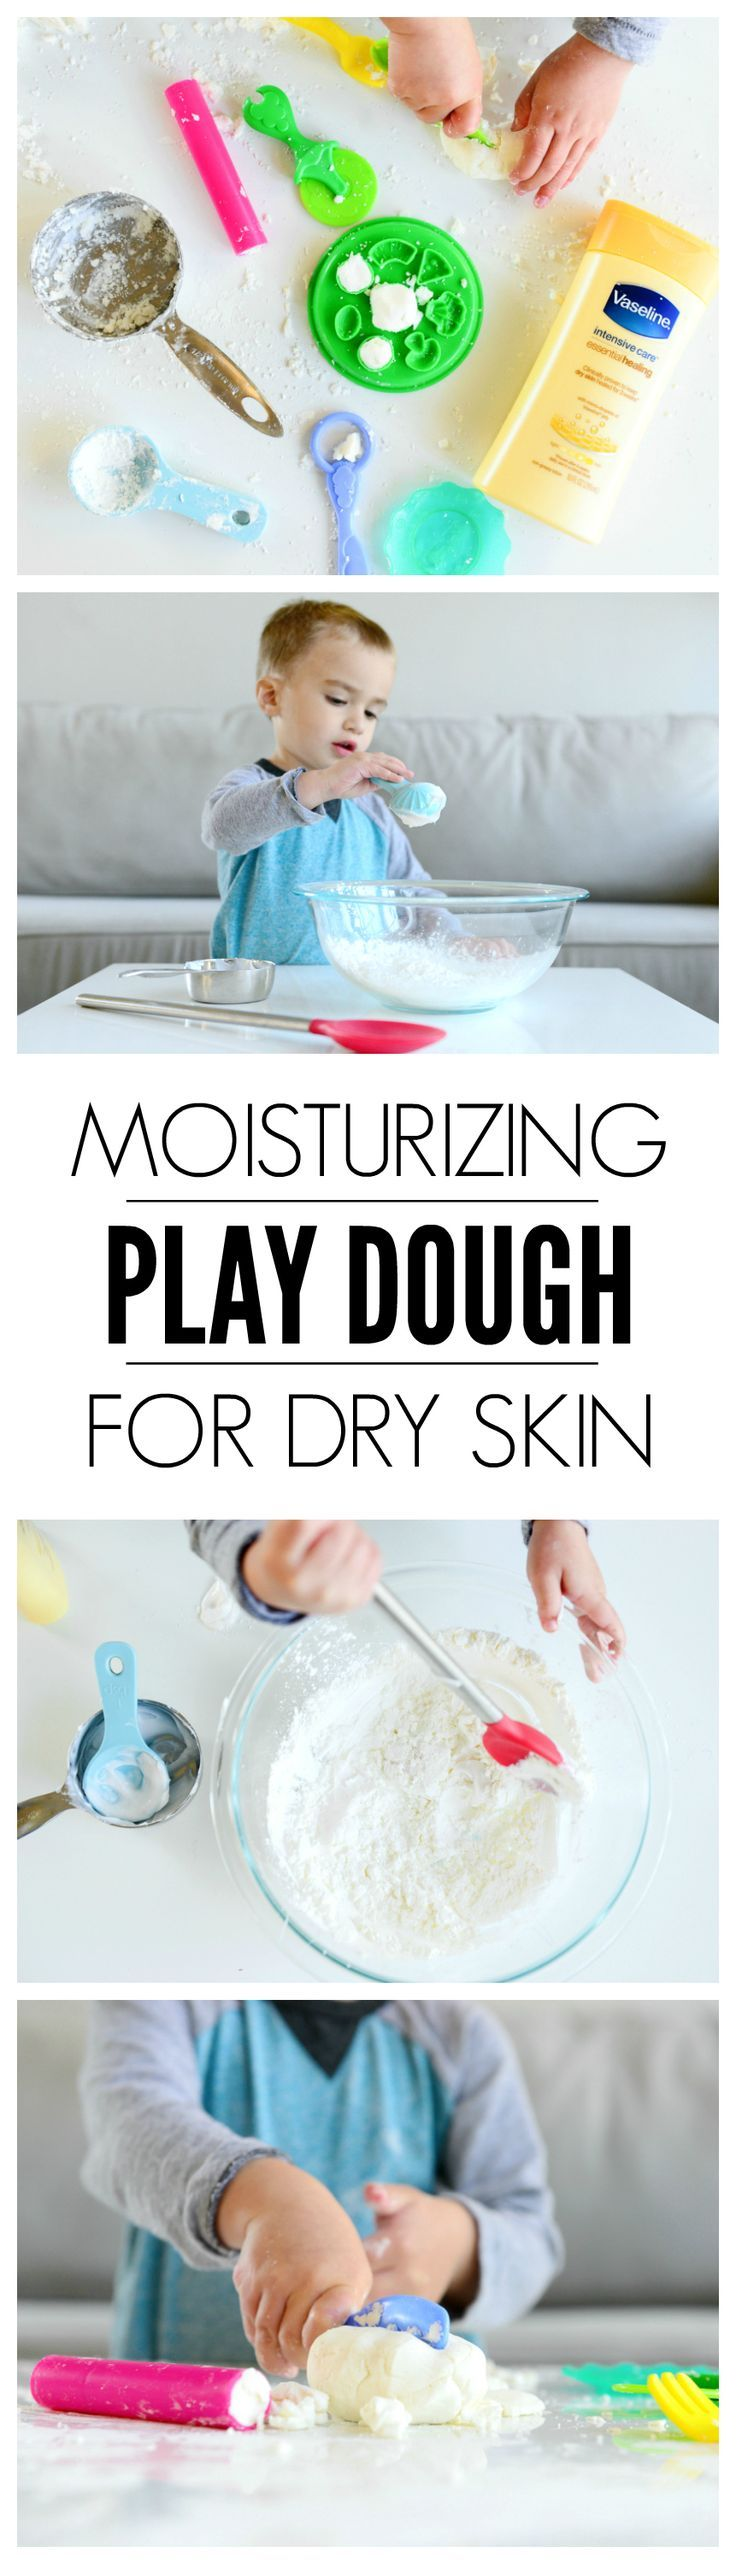 FUN for the kids AND like a mini spa treatment for your hands! This play doh recipe for dry skin is PERFECT!    Moisturizing Play Dough   Moisturizing Play Doh for Dry Skin   Play Doh recipe for dry skin from Hello Splendid www.hellosplendid.com #vaselinepartner AD Vaseline Essential Healing Lotion leaves my family's skin deeply moisturized.